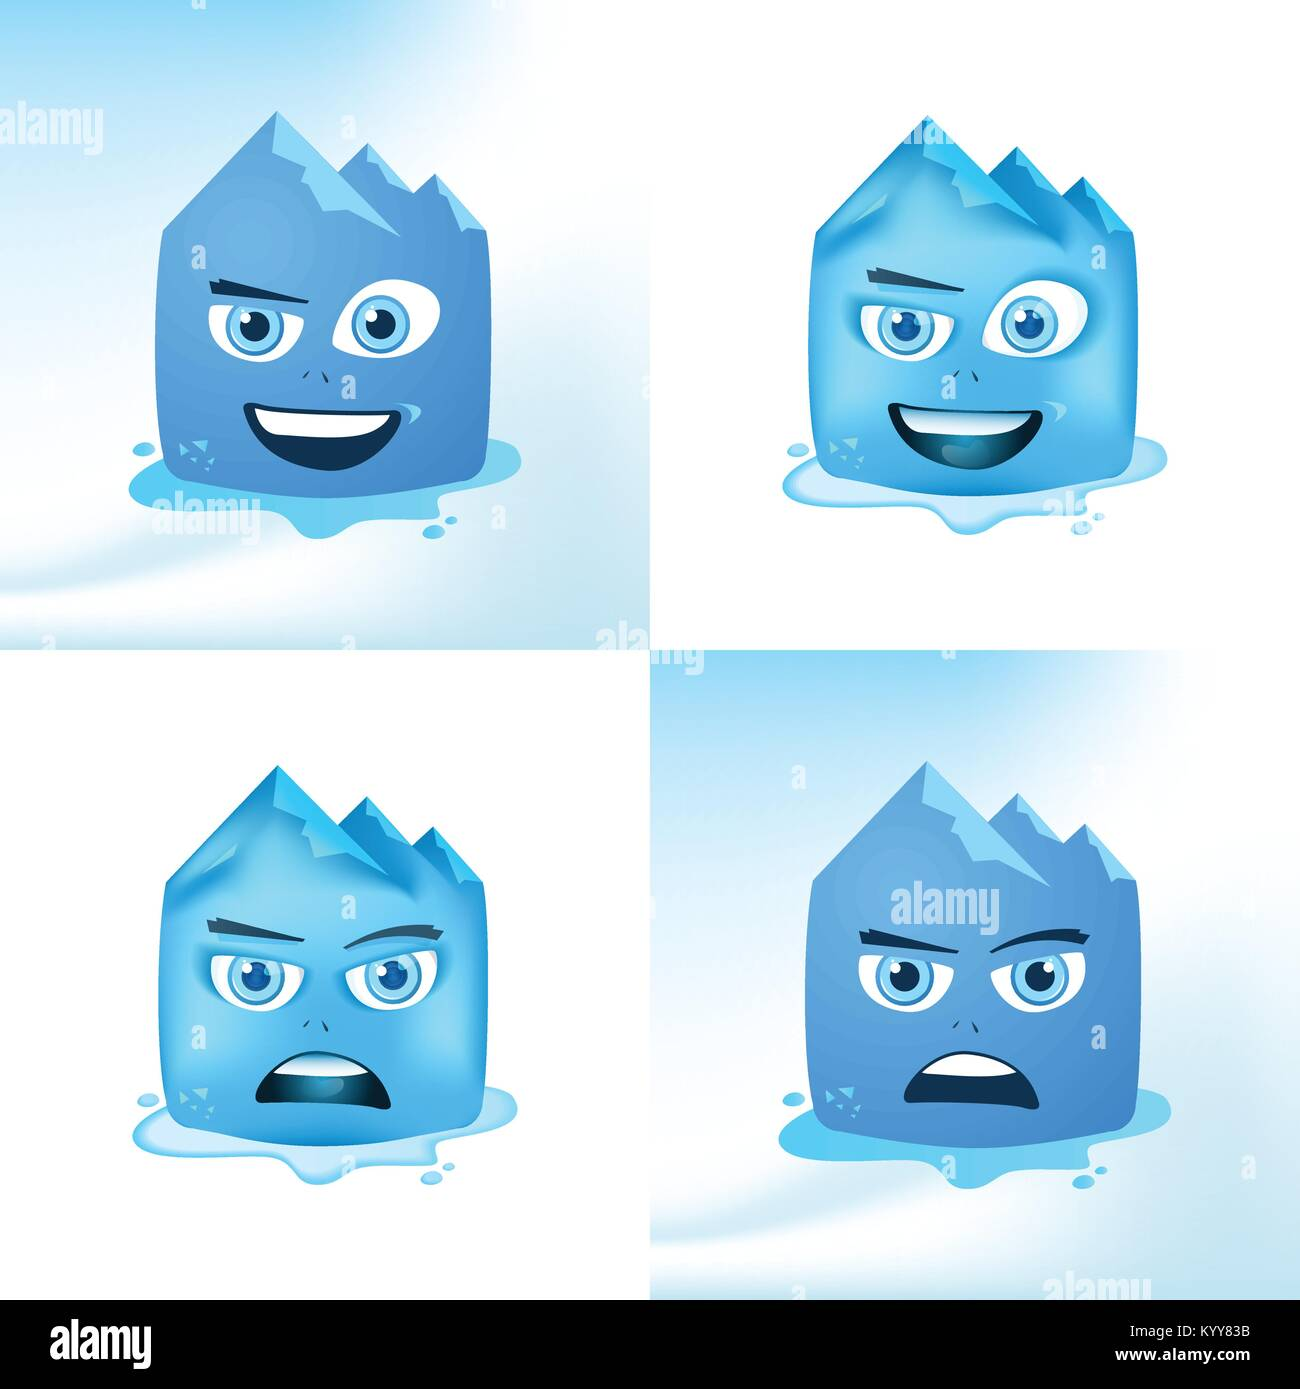 Funny Face Glacier Cartoon Expressions In Blue Color Childish Vector Design - Stock Vector